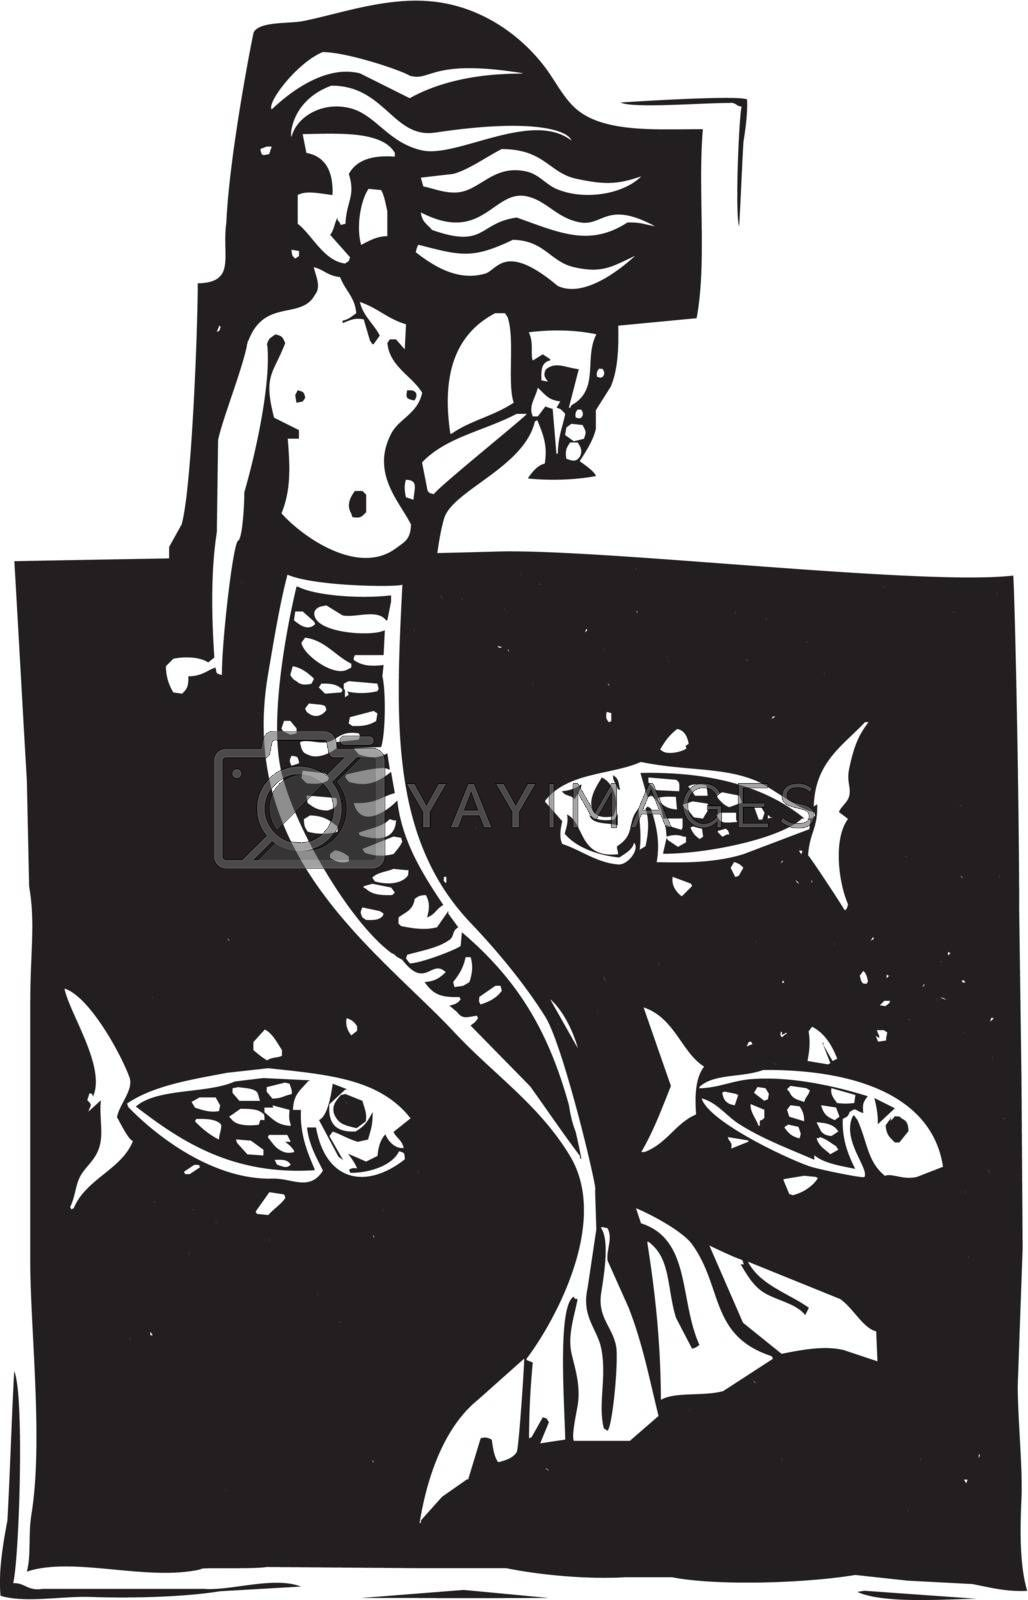 Woodcut style image of a mermaid in the ocean with fish.